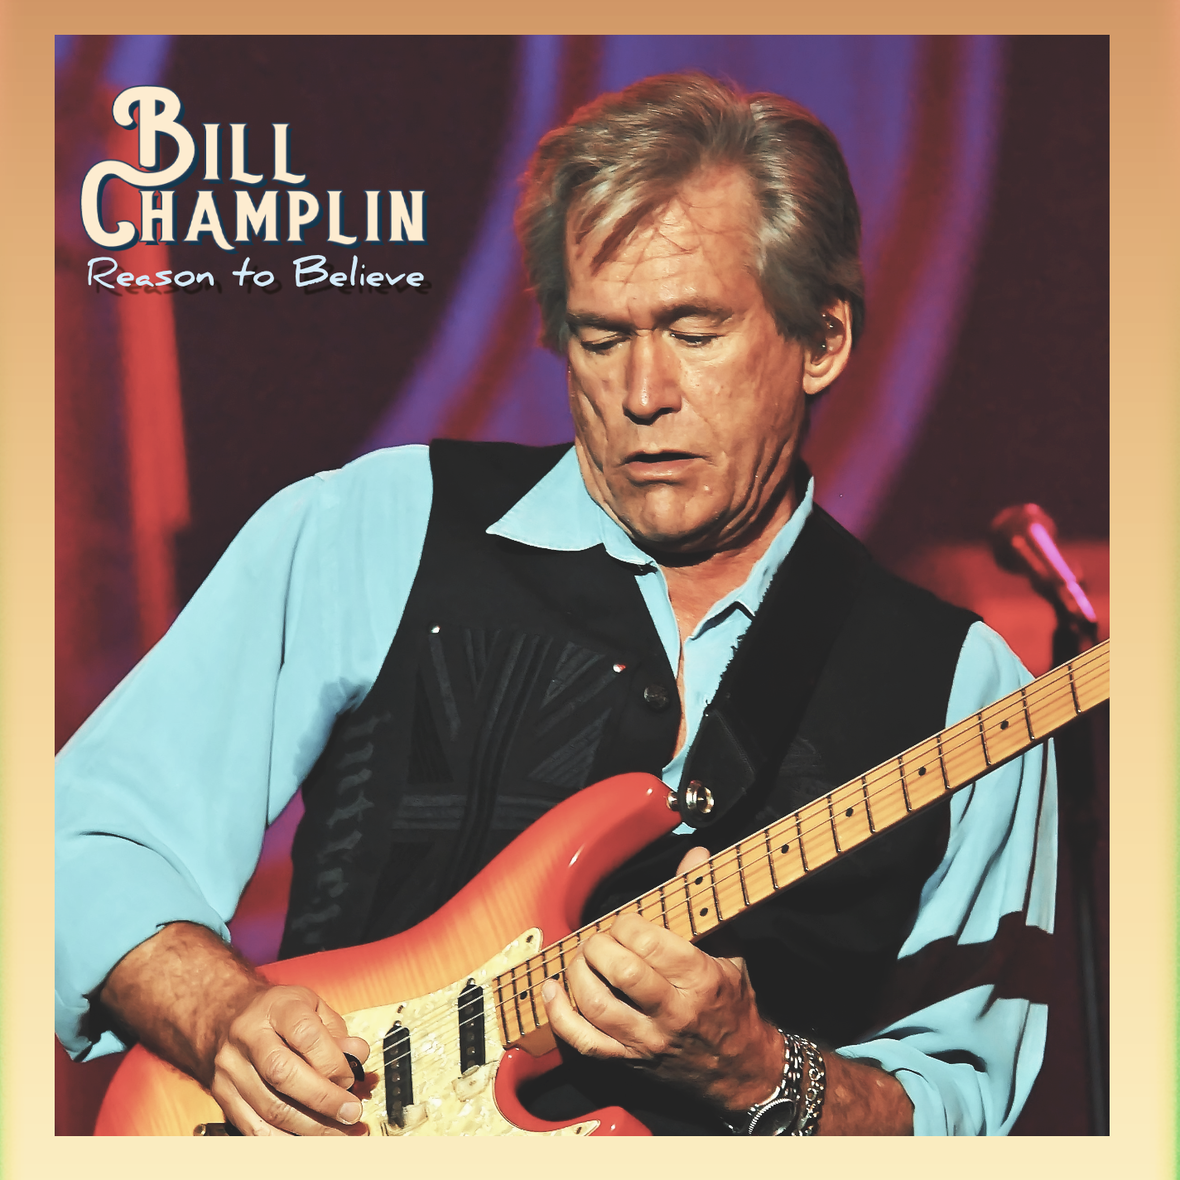 Bill Champlin - Reason to Believe 1